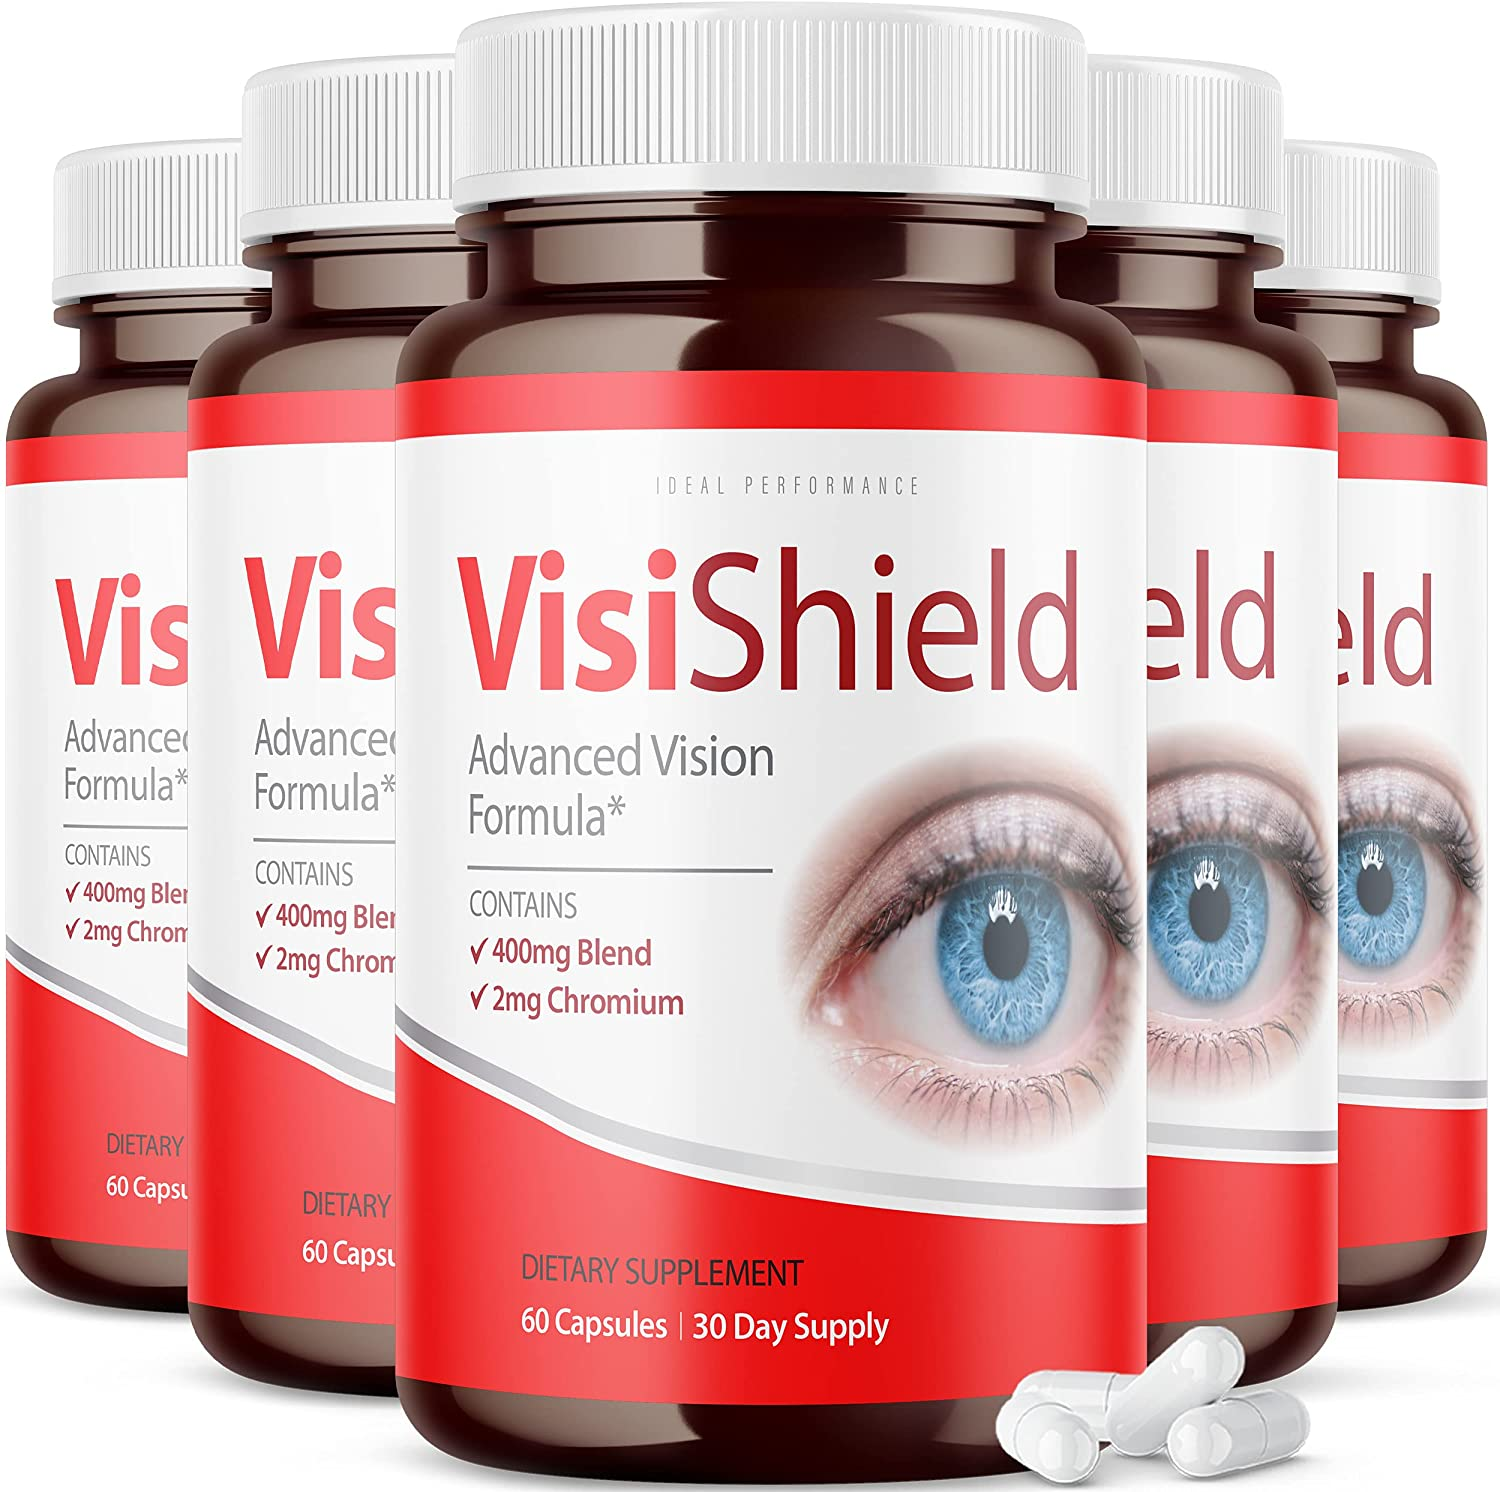 Why Should One Use Visishield, If Suffering From Eye Problems?